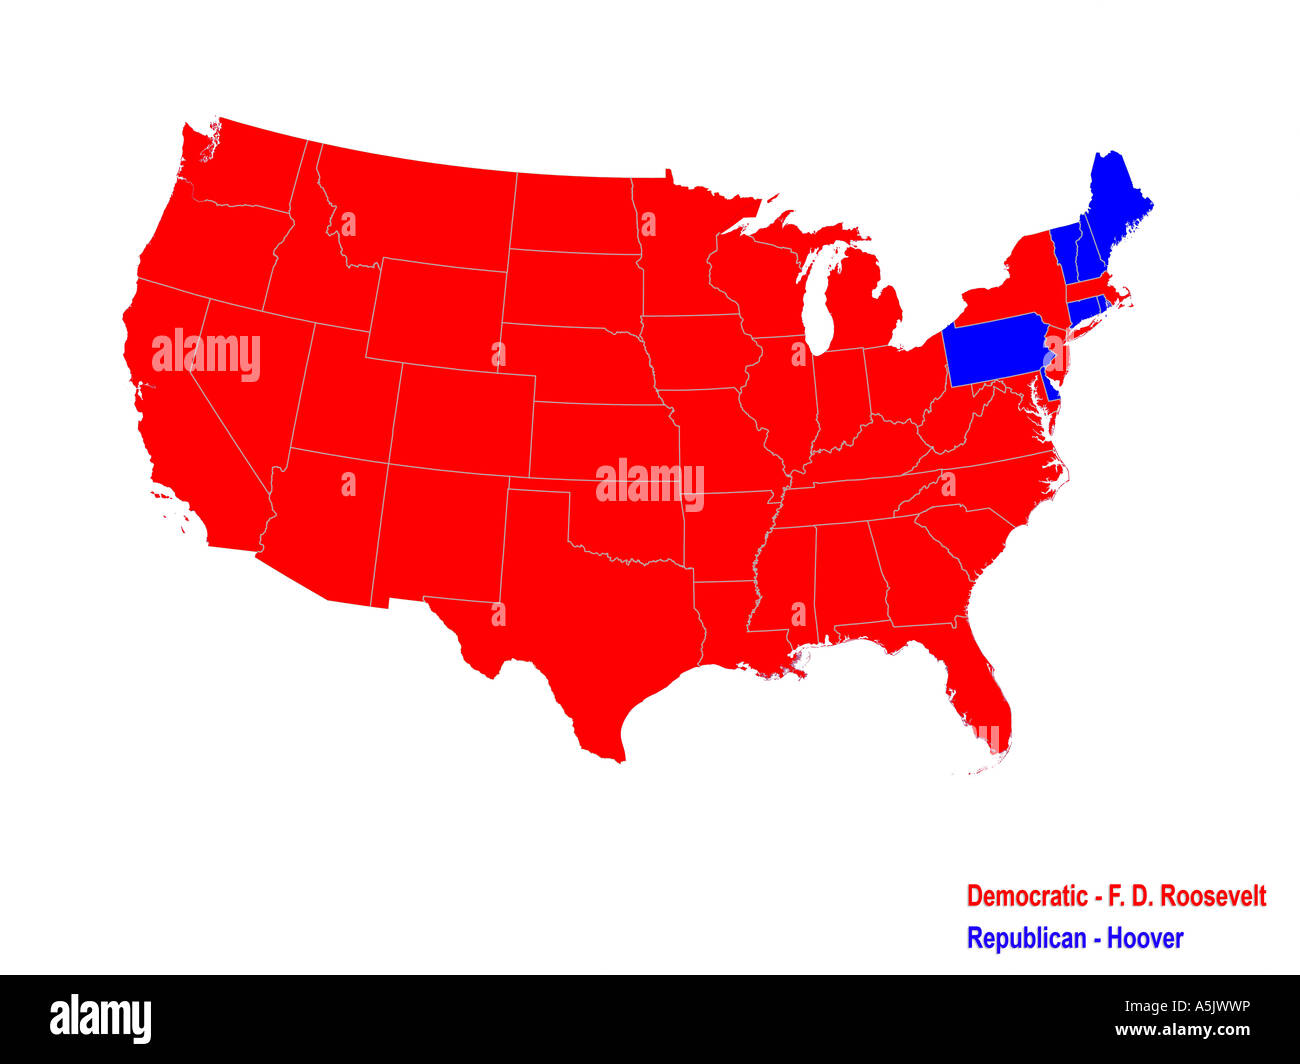 United States Presidential Election Results Map For 1932 ...